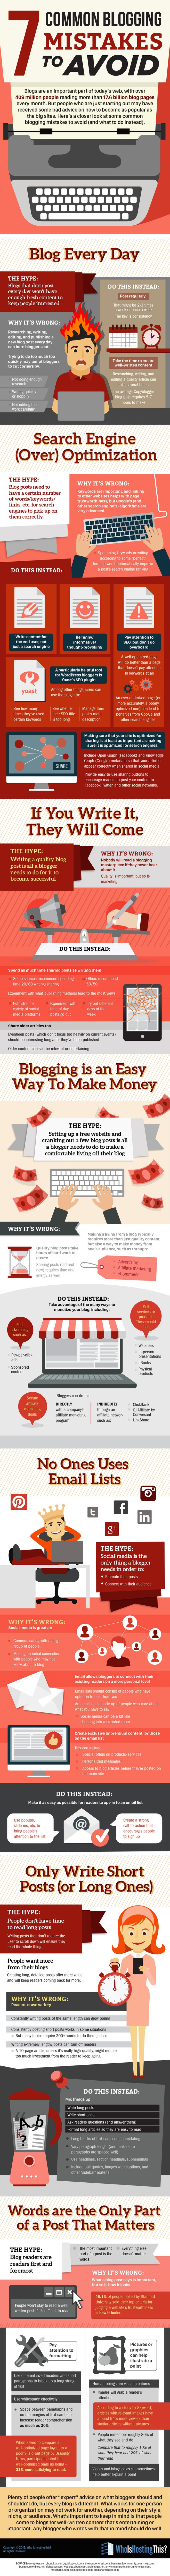 7 Common Blogging Mistakes to Avoid  [by WhoIsHostingThis -- via #tipsographic]. More at tipsographic.com